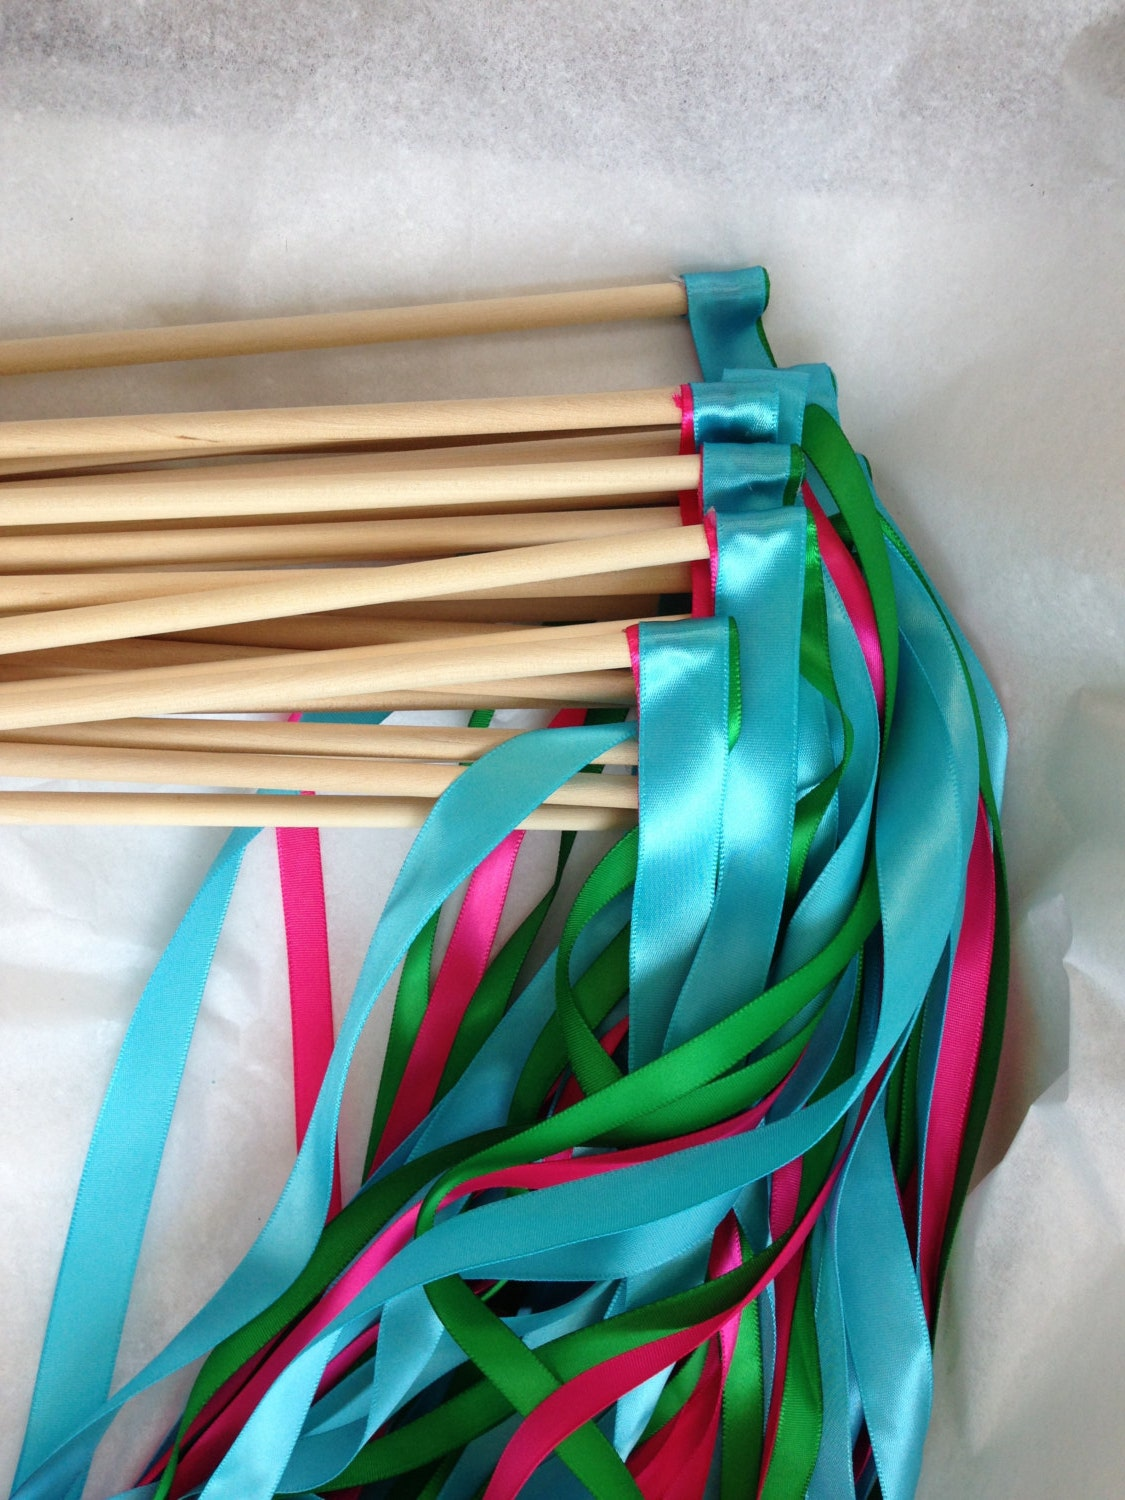 25 wedding ribbon wands two 3 8 inch ribbons by for Ribbon wands